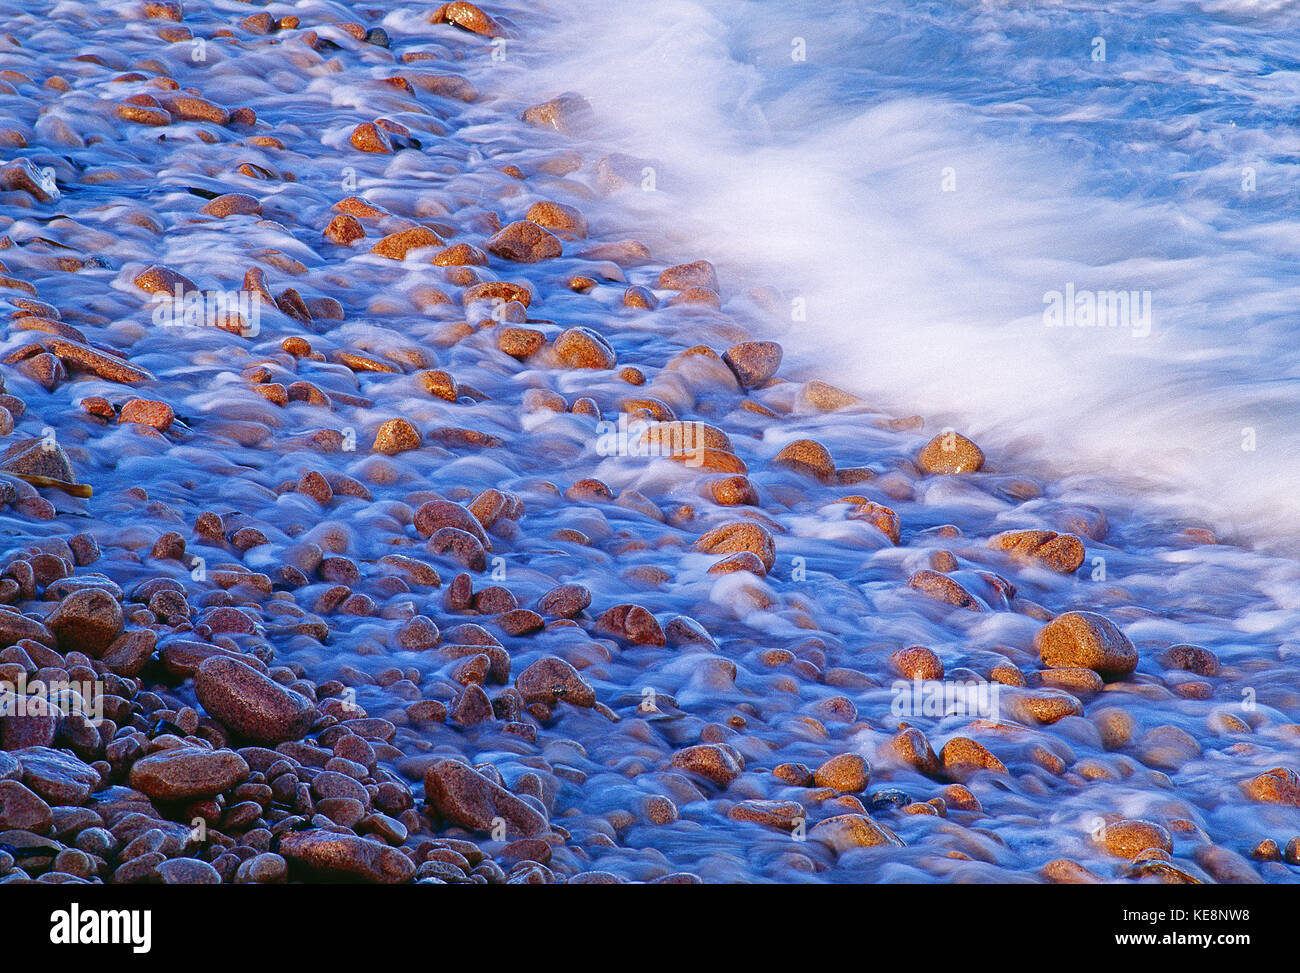 Channel Islands. Guernsey. Waves on pebble beach. - Stock Image